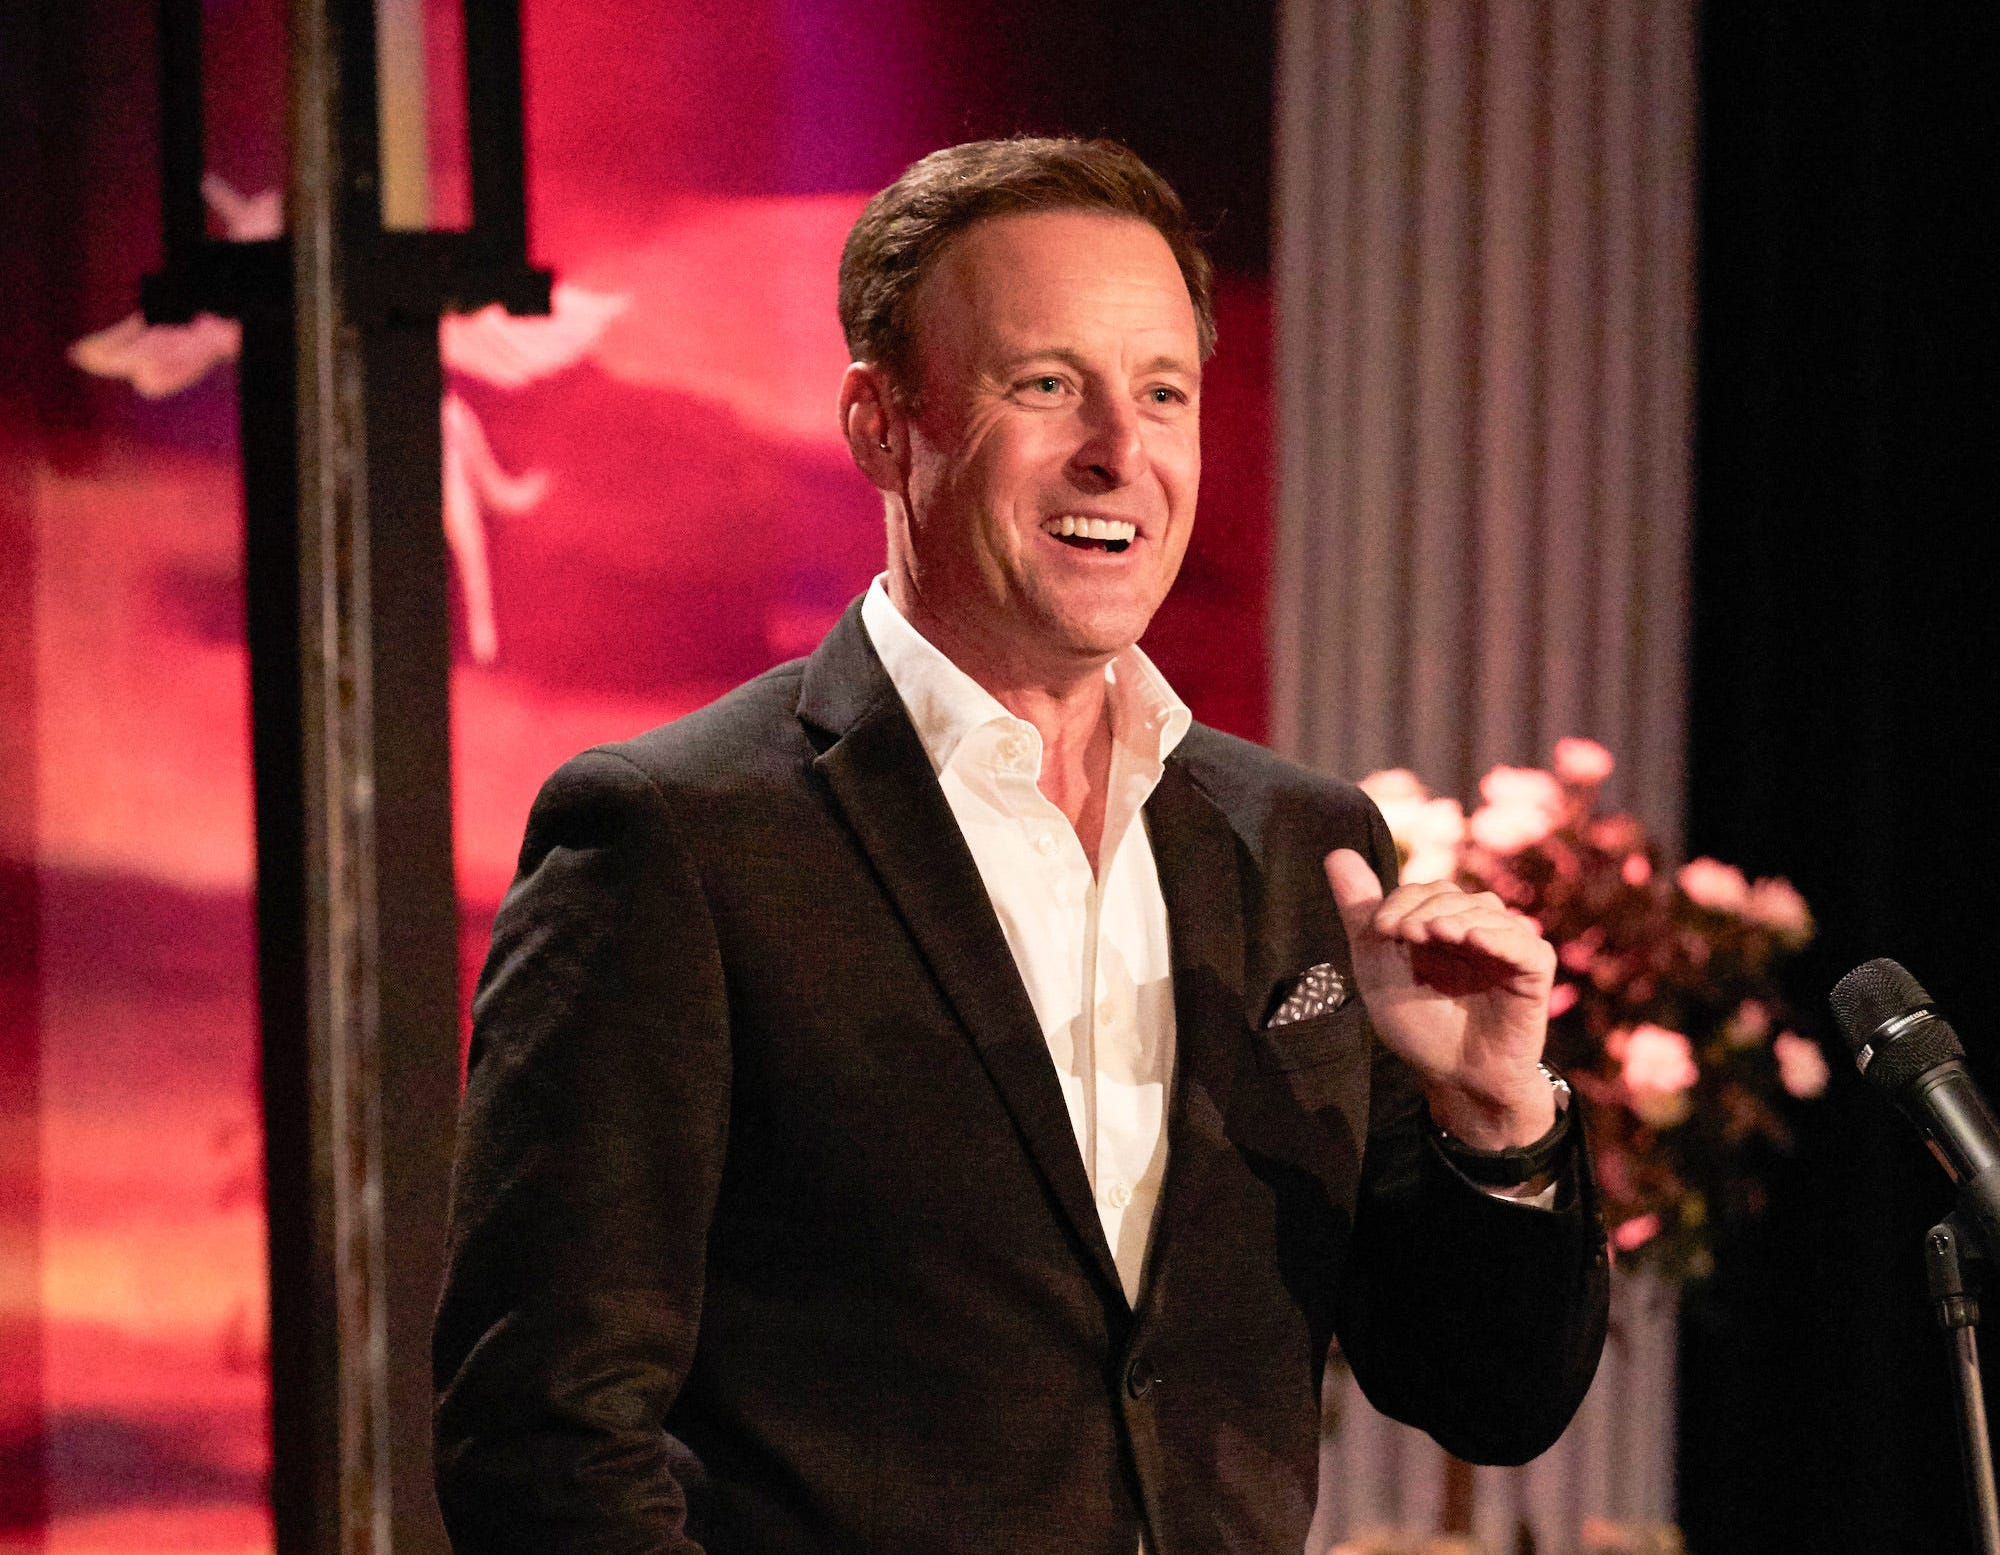 'The Bachelor' host Chris Harrison drew controversy for off-camera remarks that led him to temporarily step back from the show.